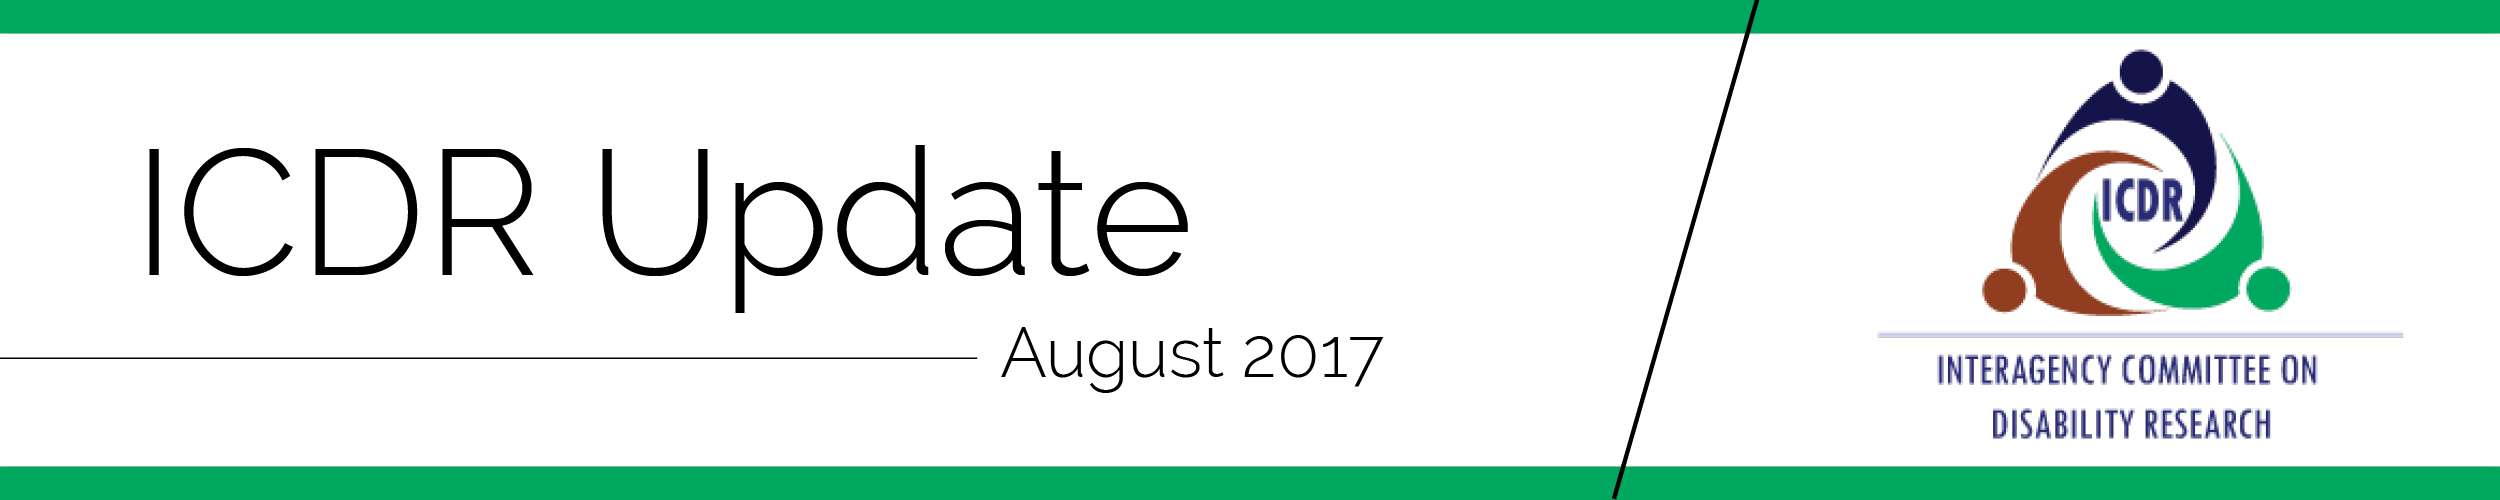 ICDR Update - August 2017